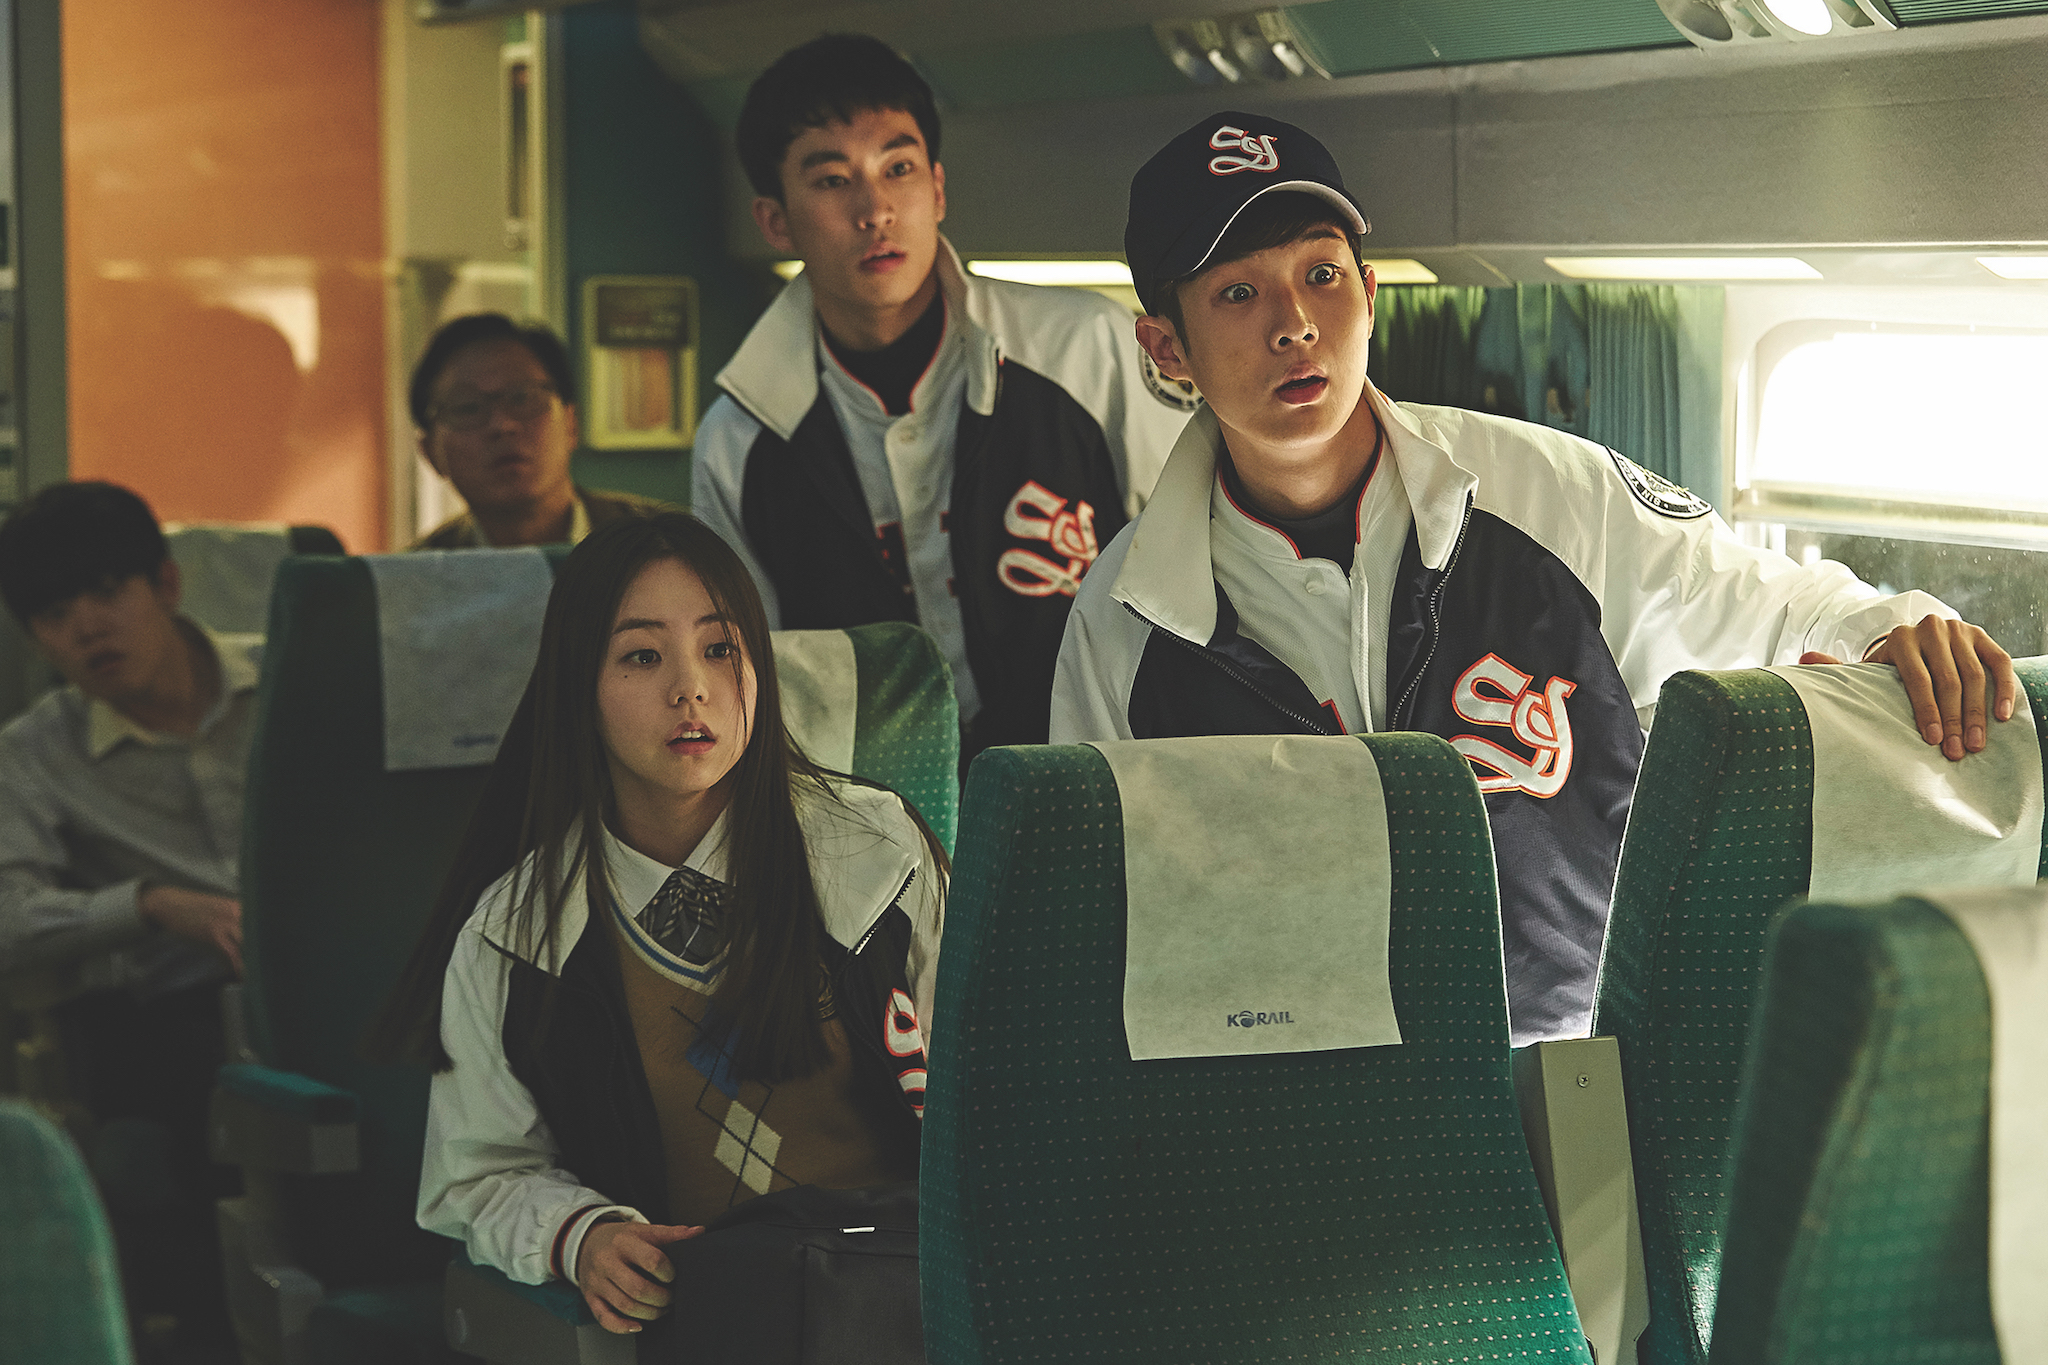 Choi Woo-shik Train to Busan